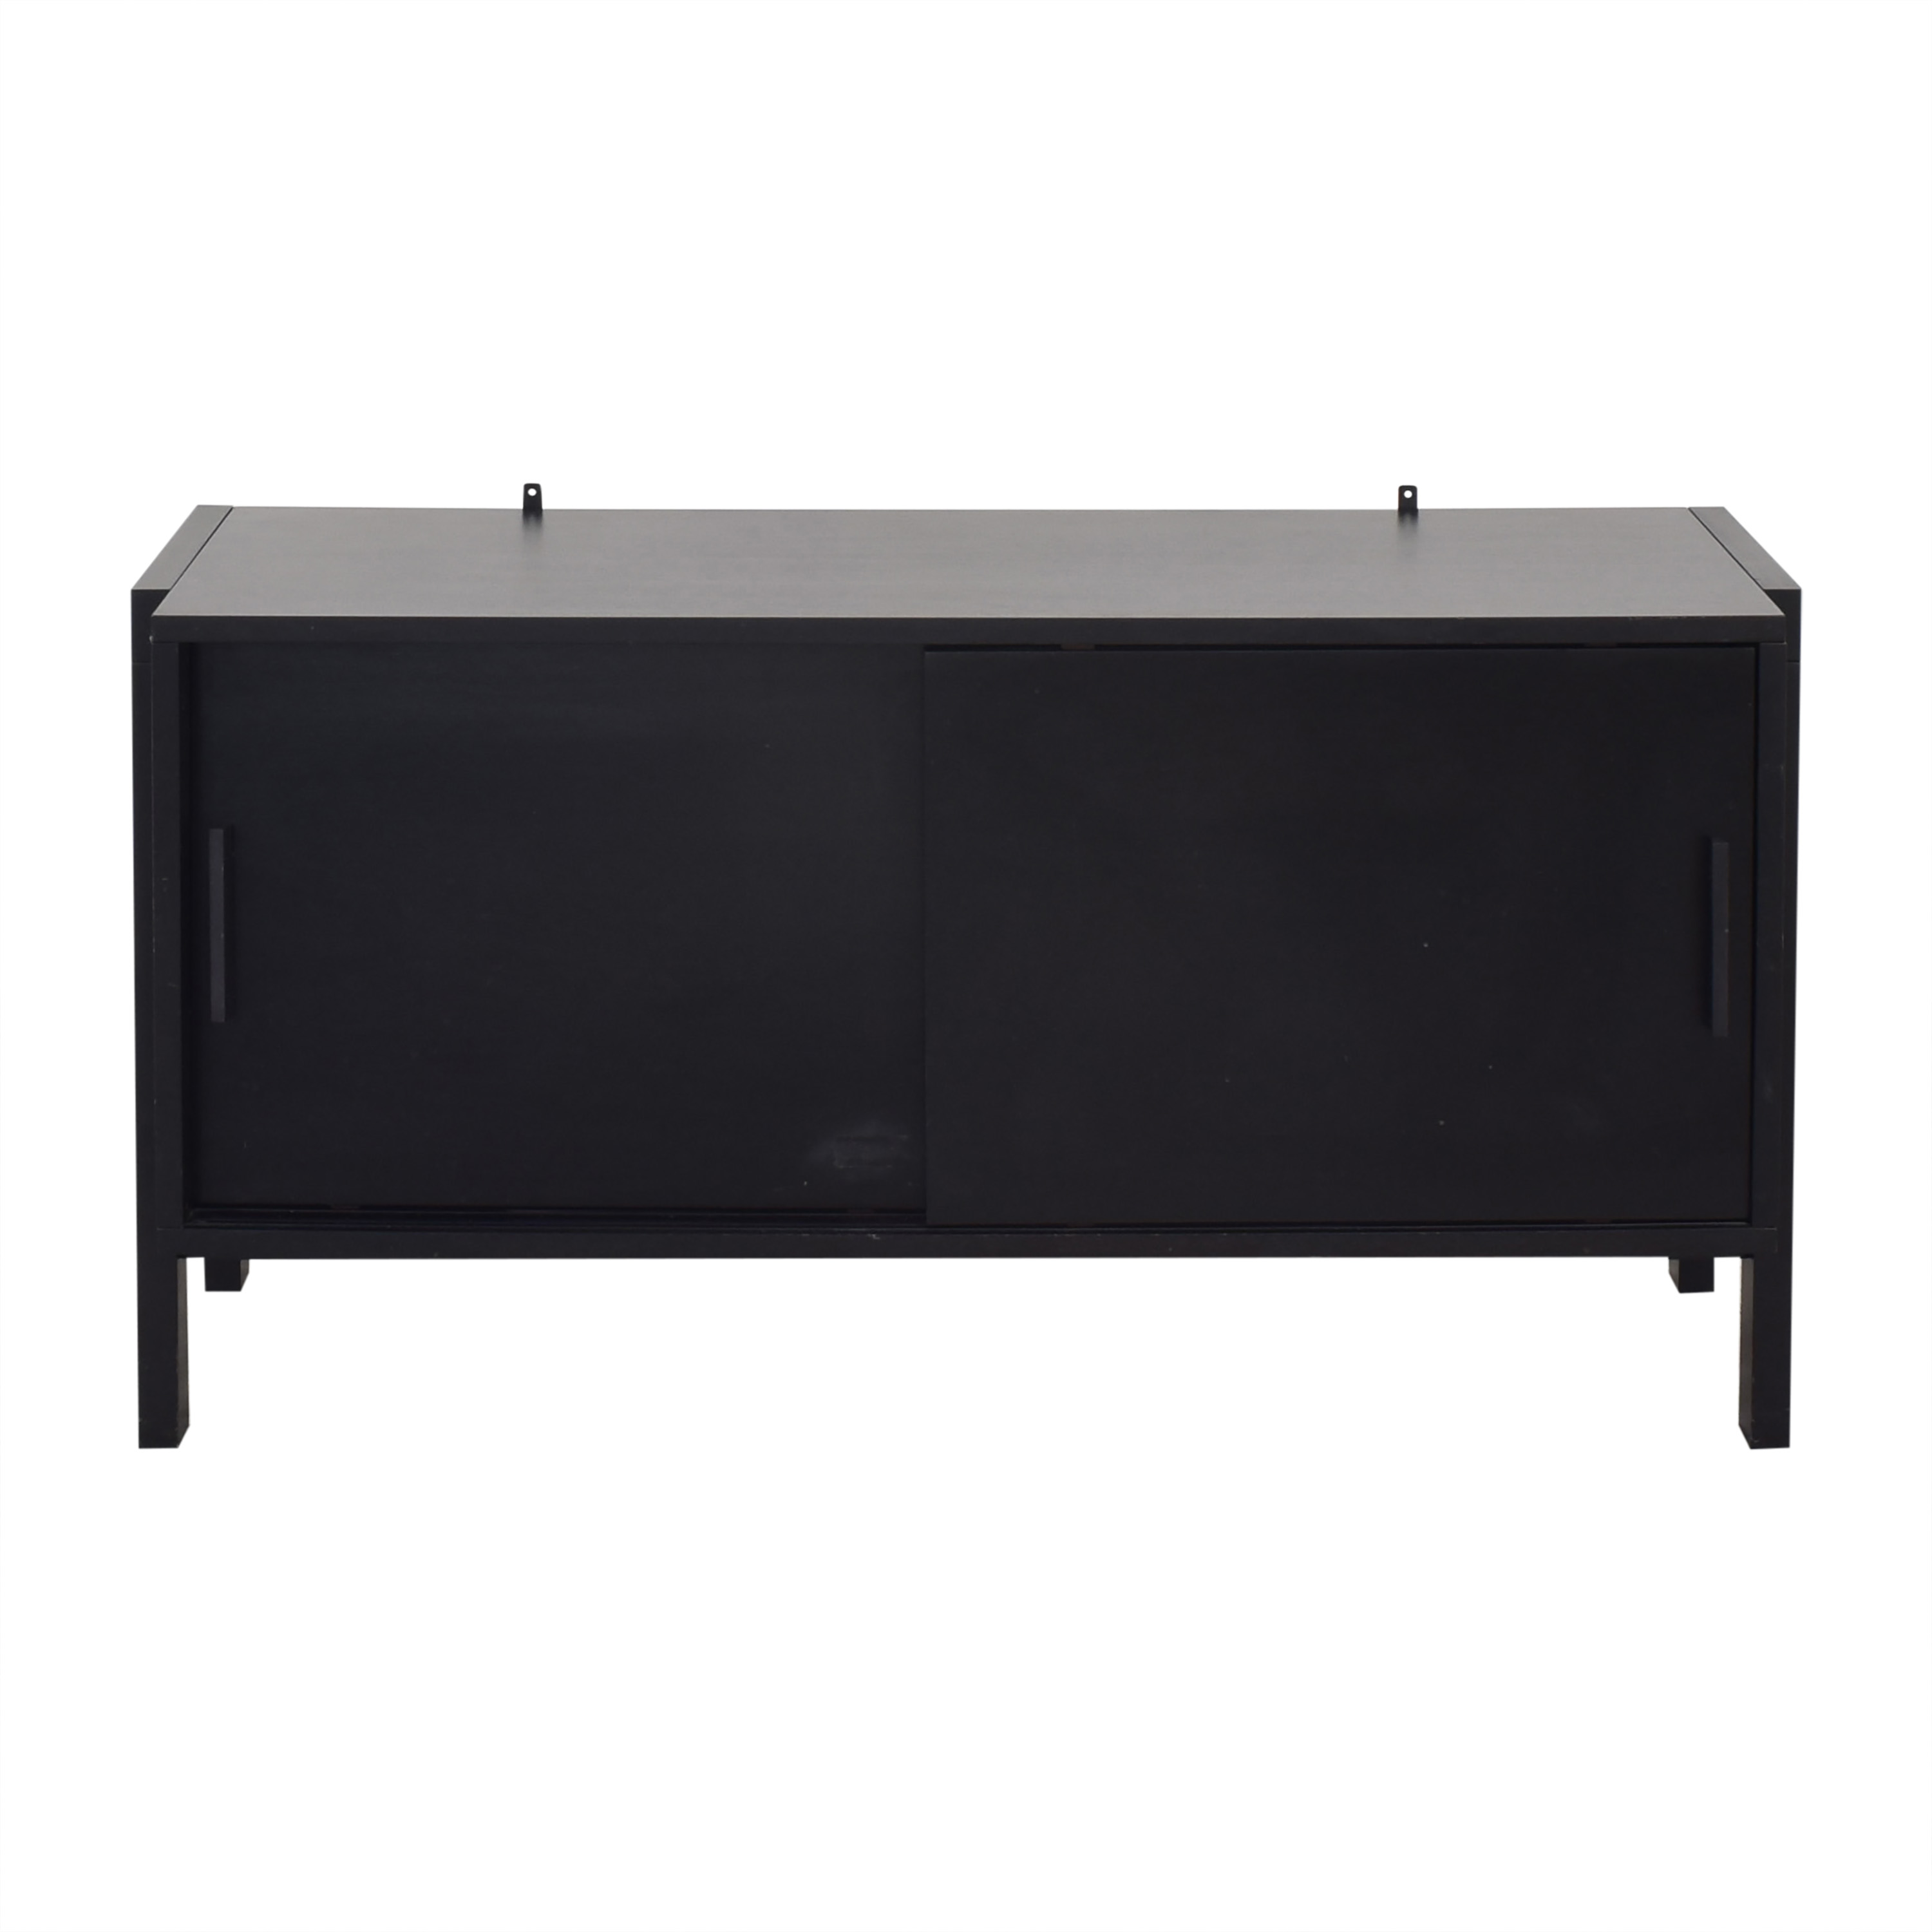 Crate & Barrel Sawyer Low Media Stand Crate & Barrel